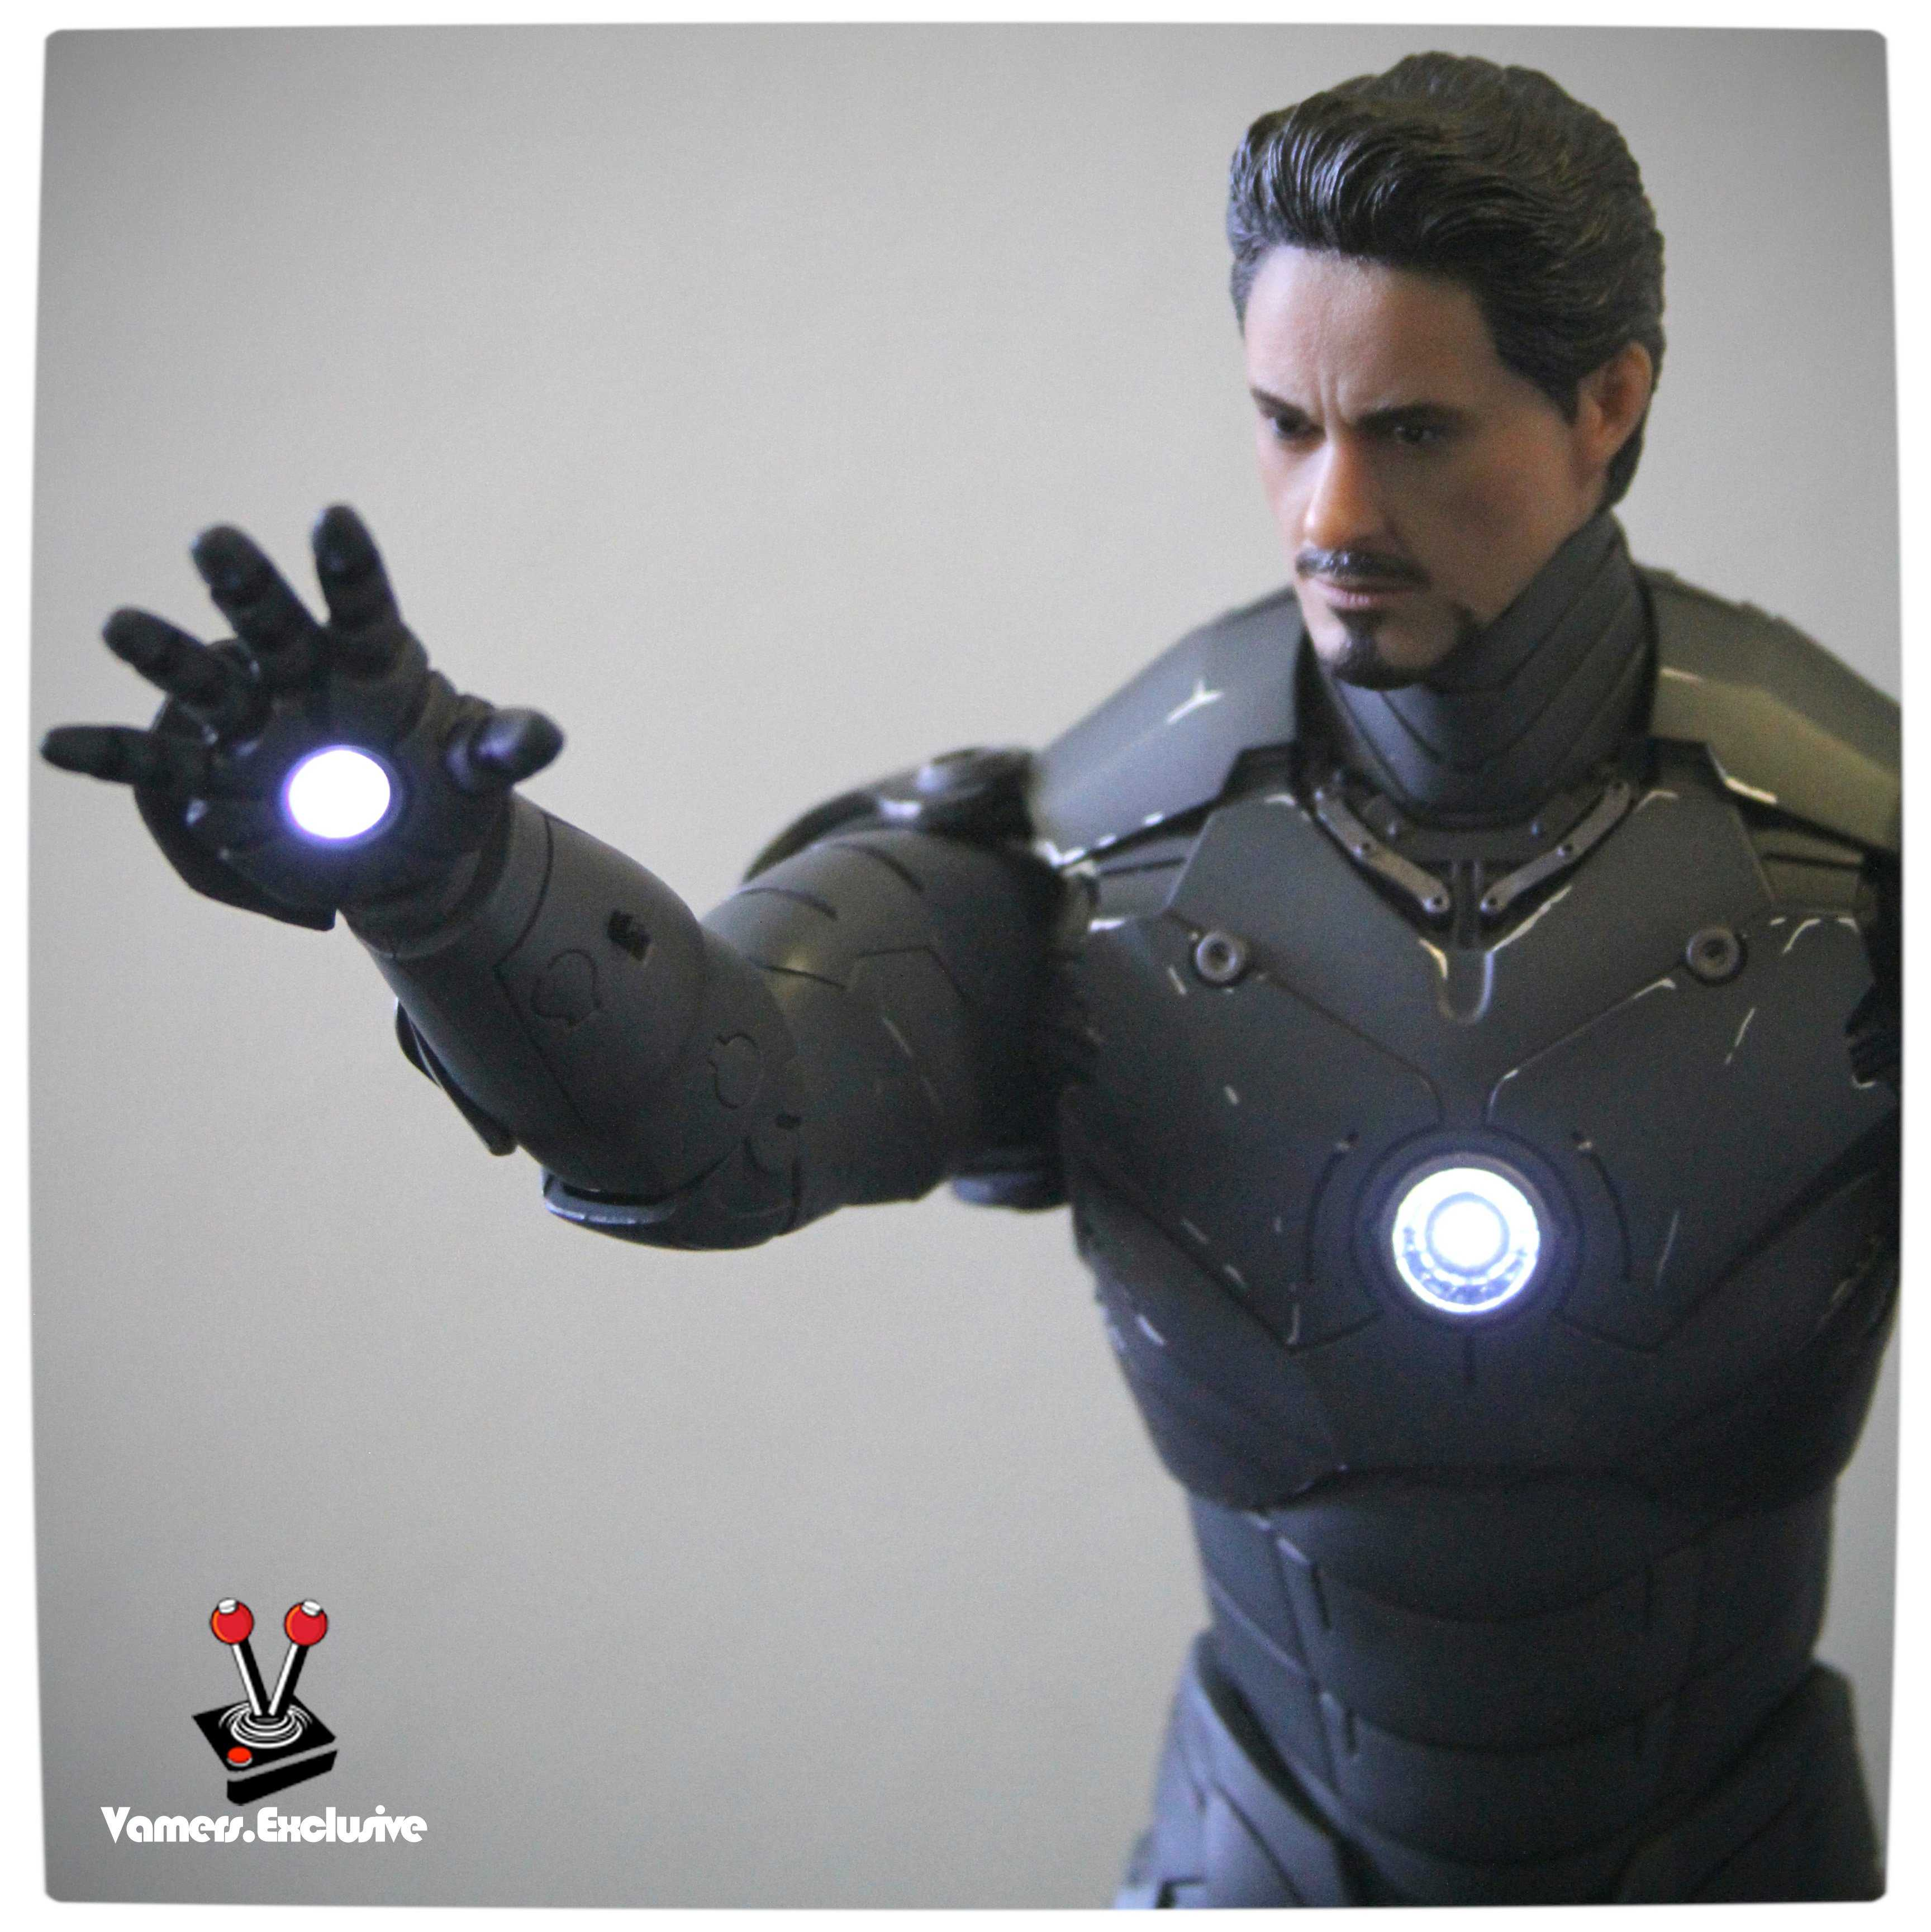 Vamers - Hot Toys - Limited Edition Collectible - Iron Man Mark III - SIlly Thing's TK Edition - MMS101 - Tony Stark Ready to Fire - Arc Reactor Engaged - Right Arm Extended